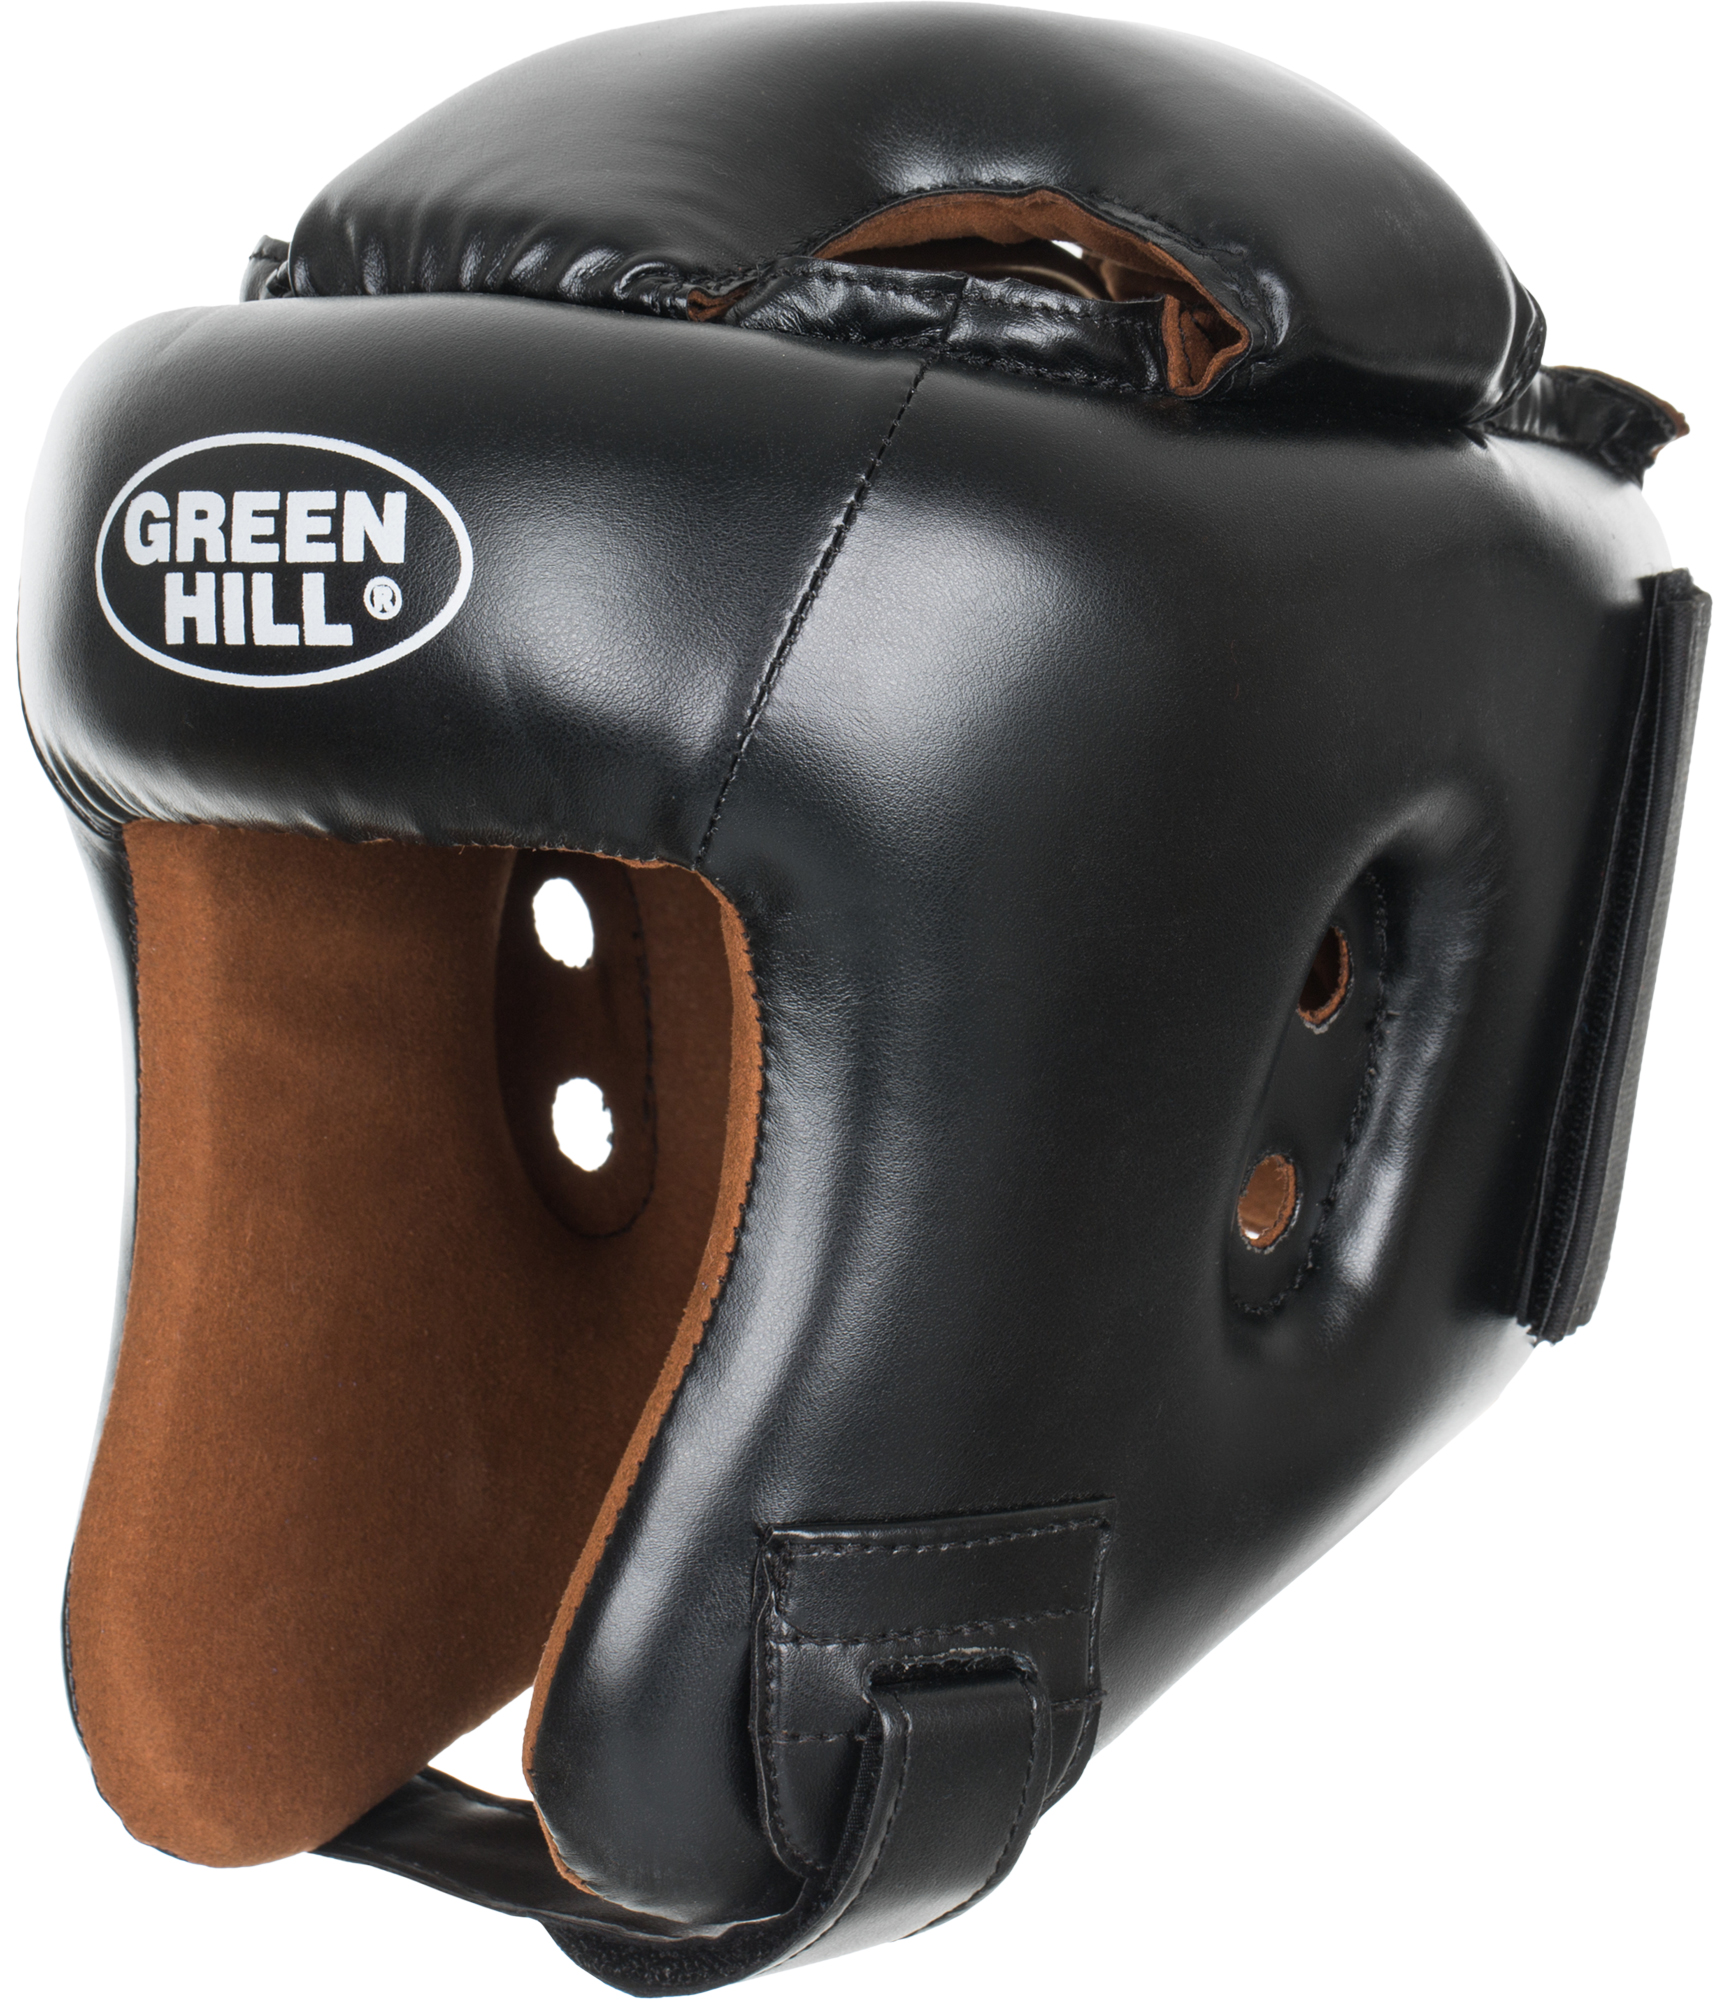 Green Hill Шлем для кикбоксинга Green Hill Headgear, размер 58-60